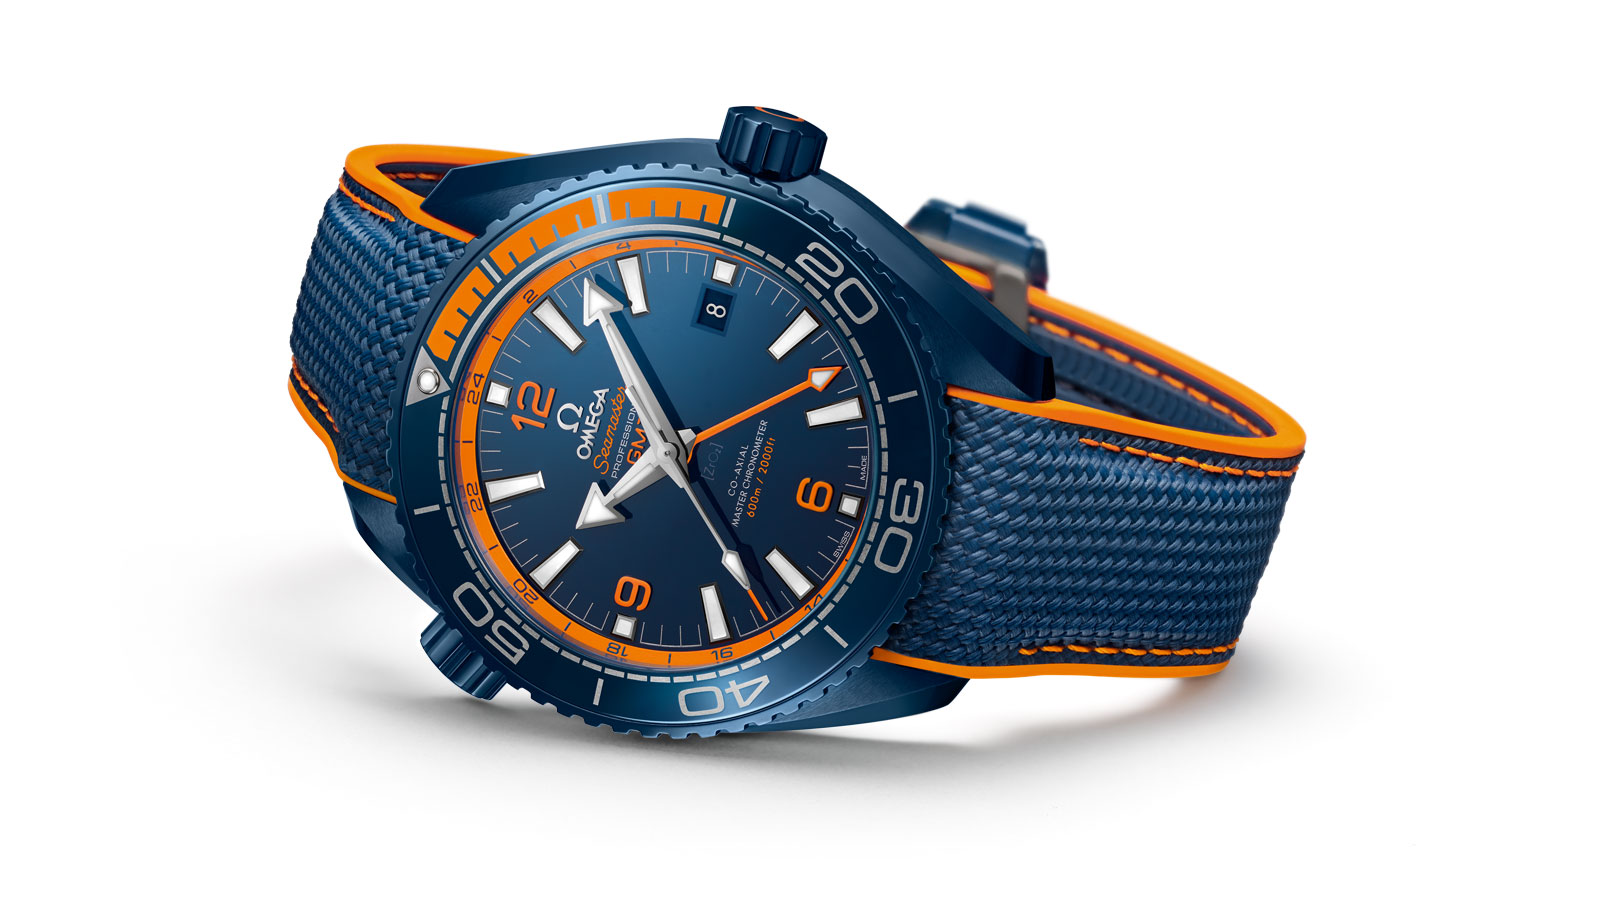 Omega-Seamaster-planet-ocean-big-blue-1.jpg